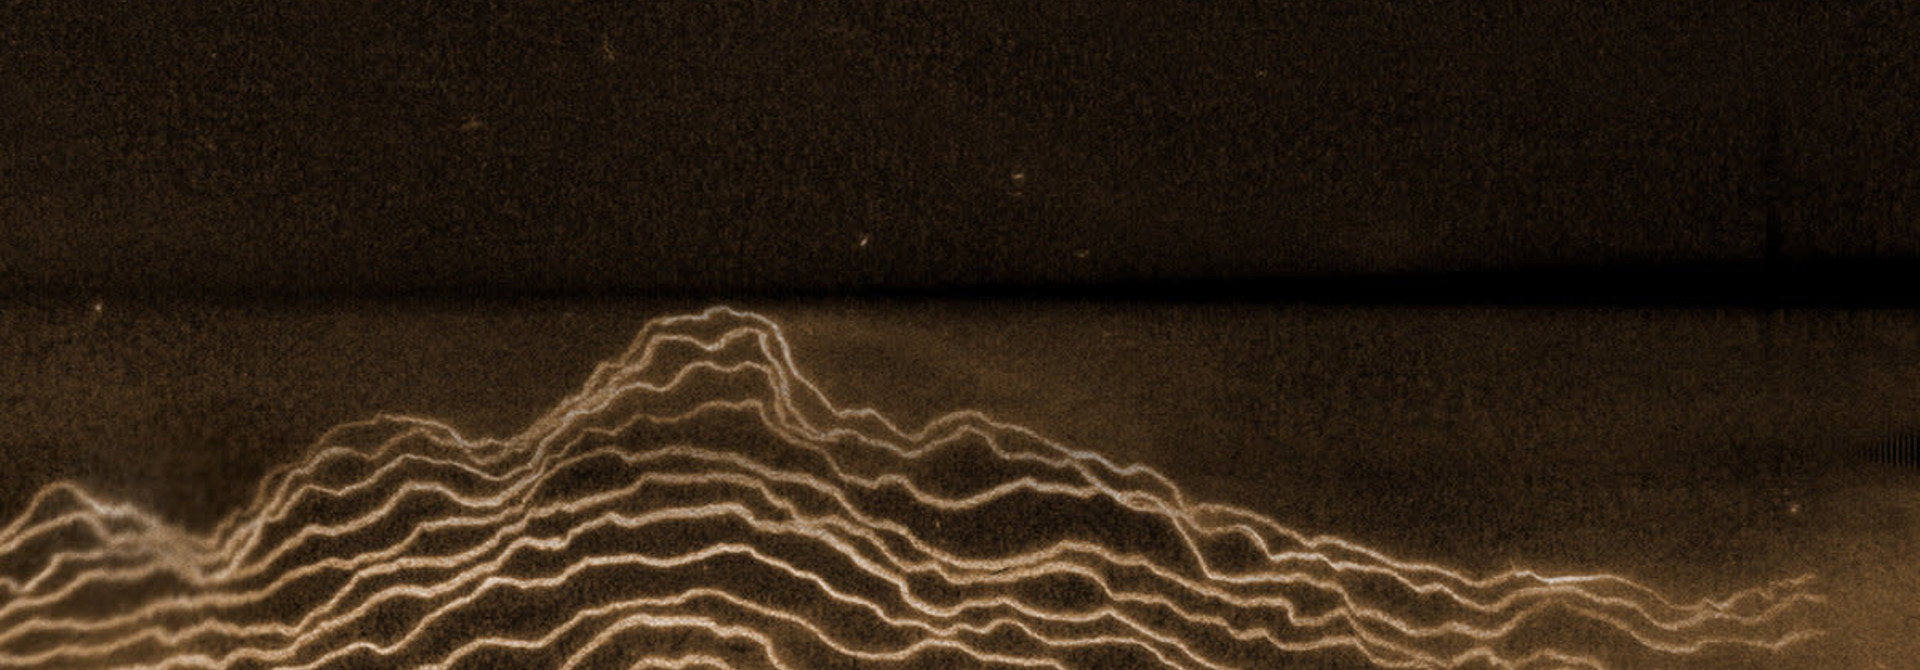 Floating Points • Reflections : Mojave Desert